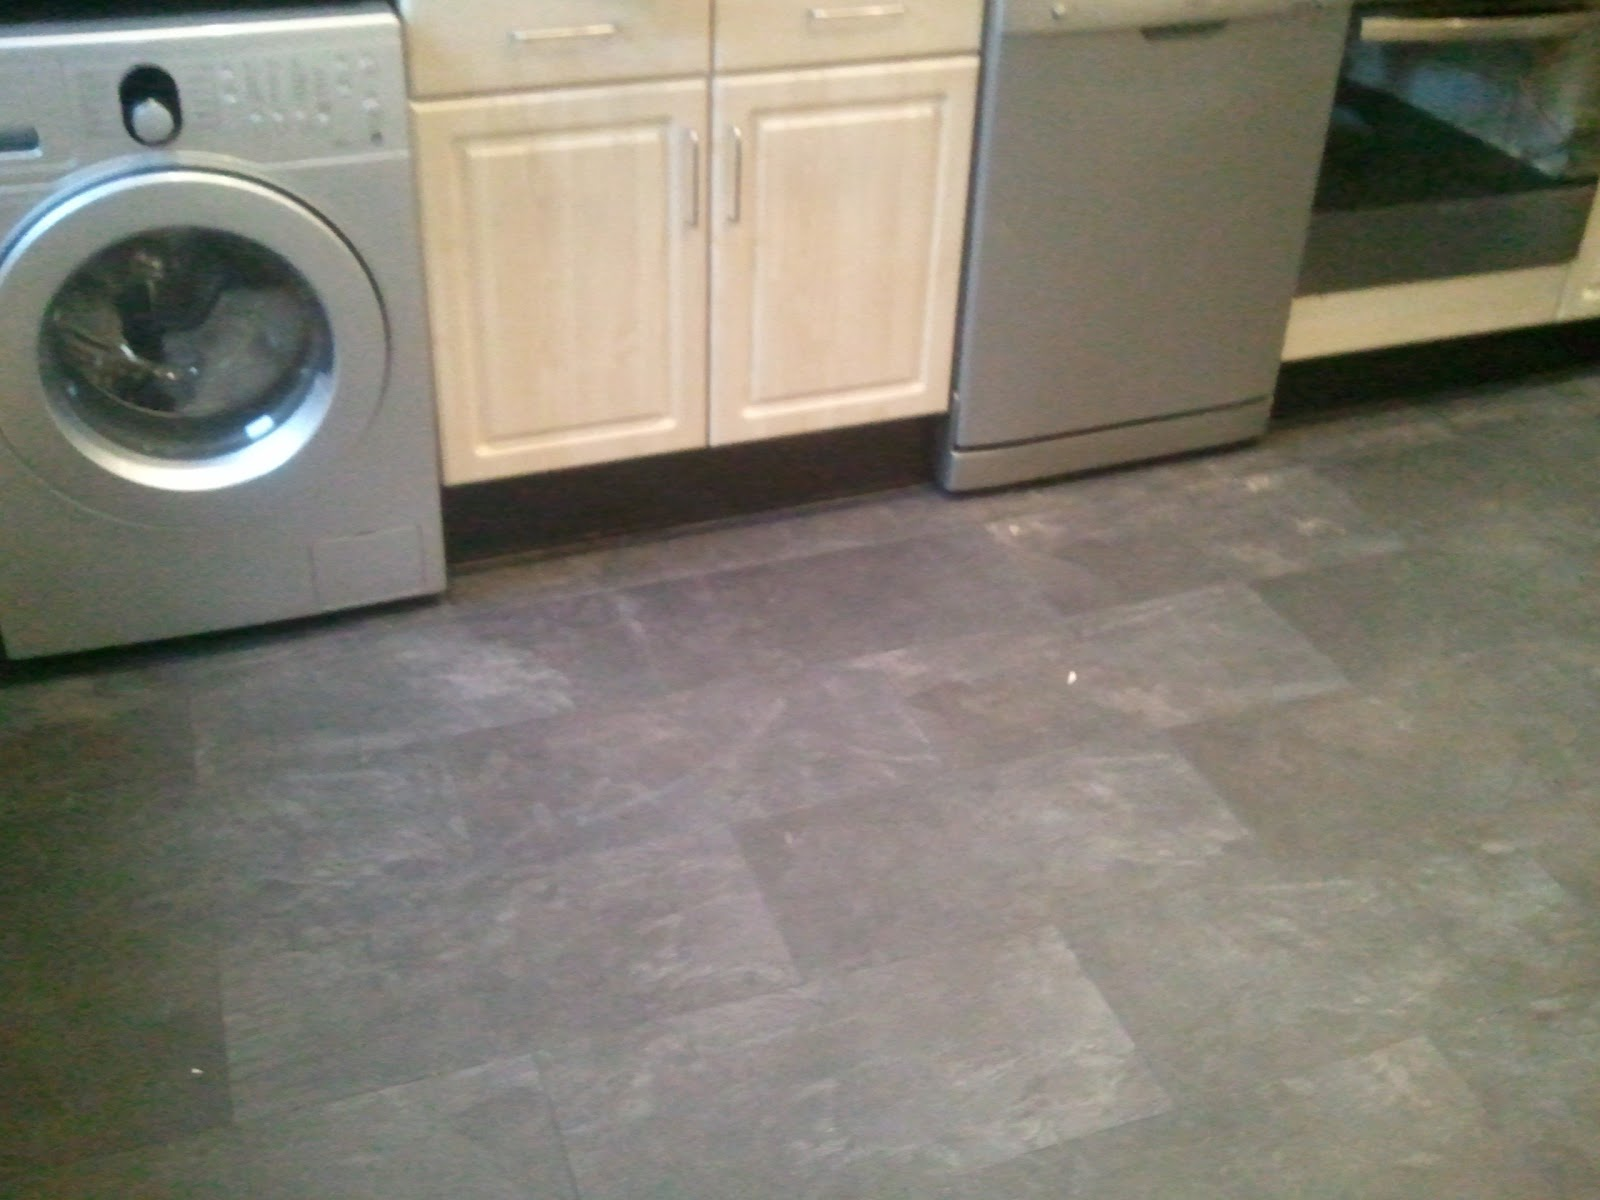 b and q kitchen flooring 18 wonderful b and q flooring tiles lentine marine 57149 7537